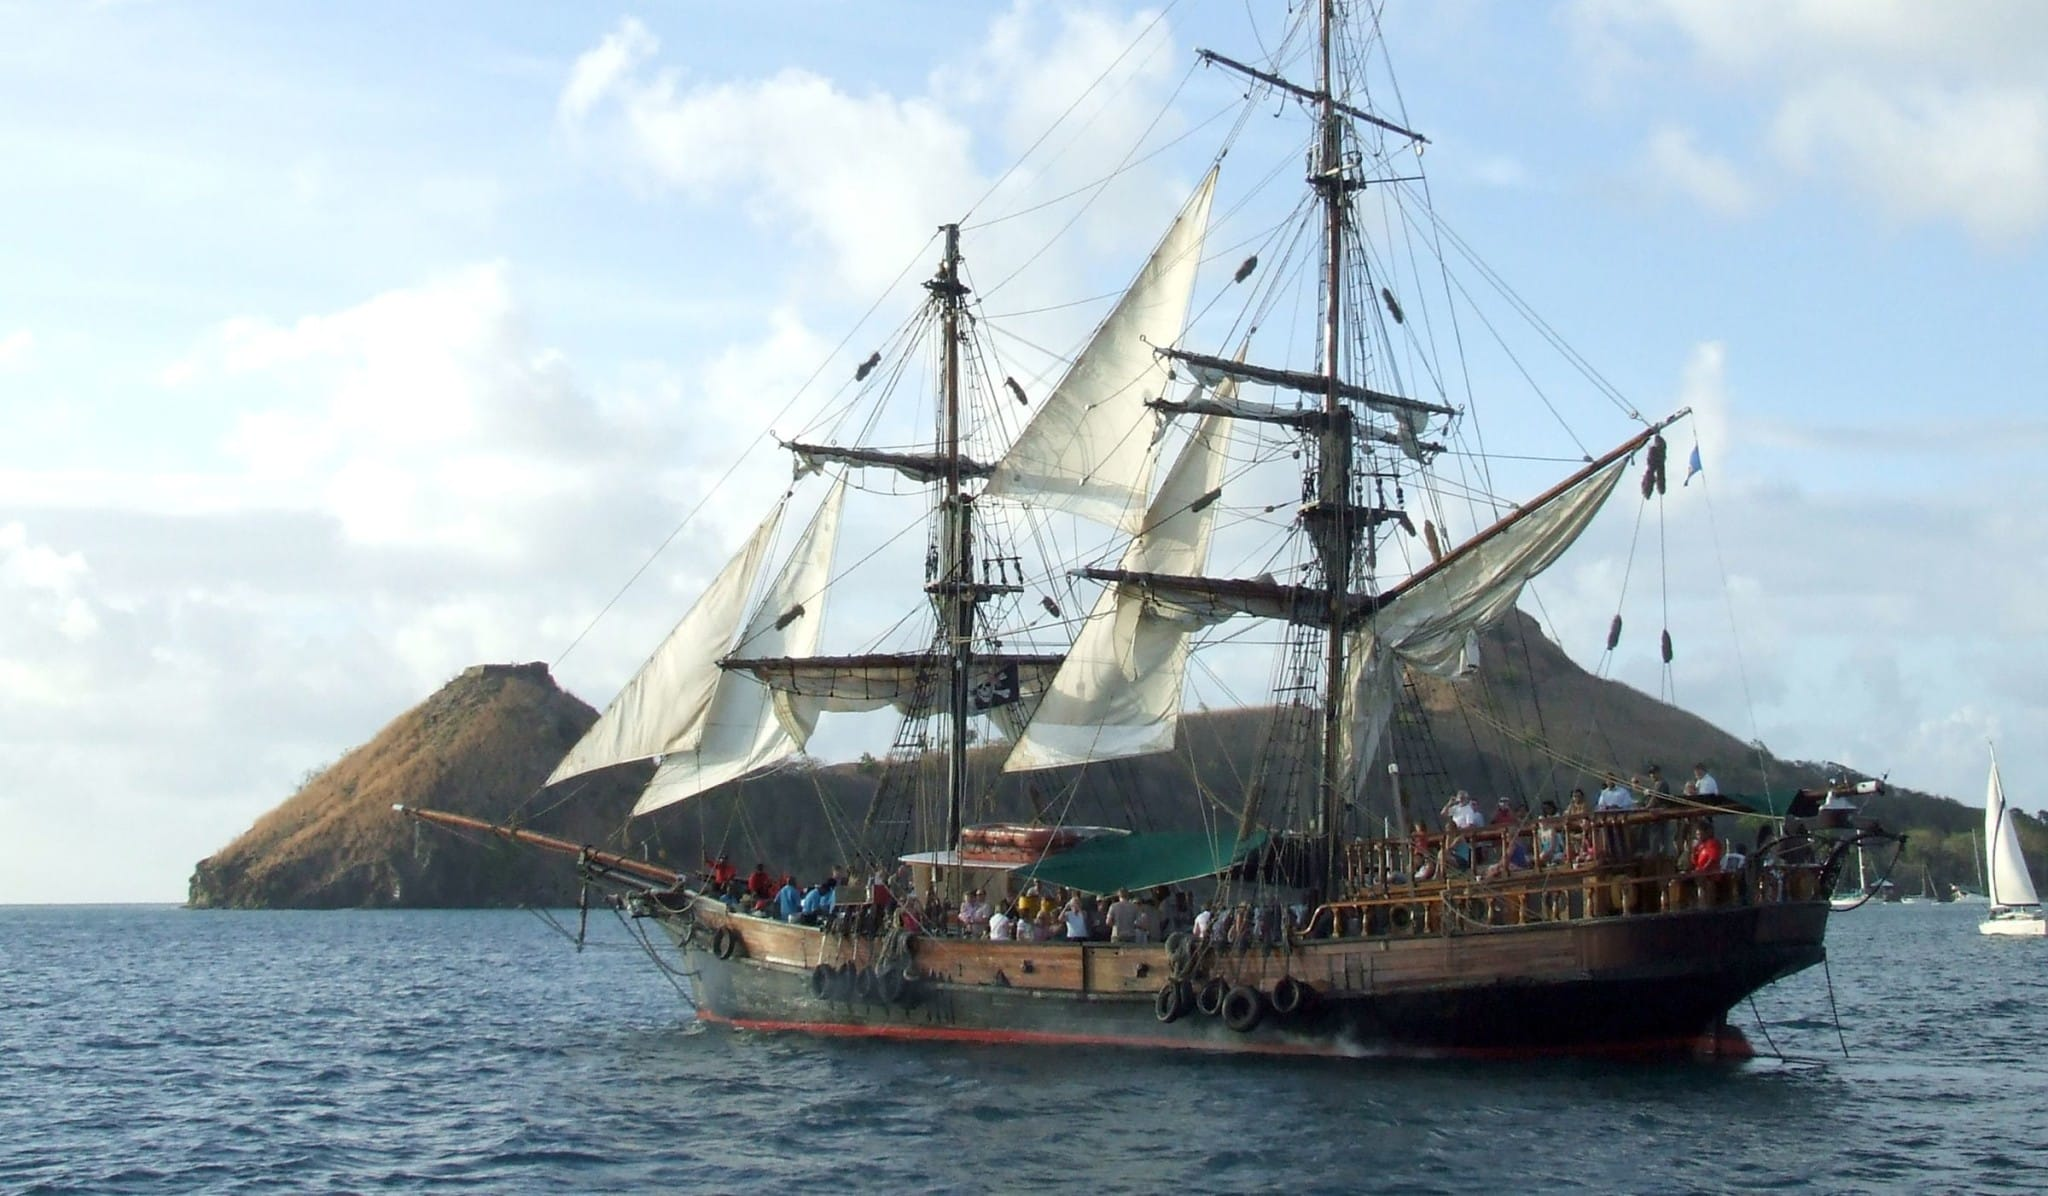 The Brig Unicorn Pirate Ship: Uncommon Attraction